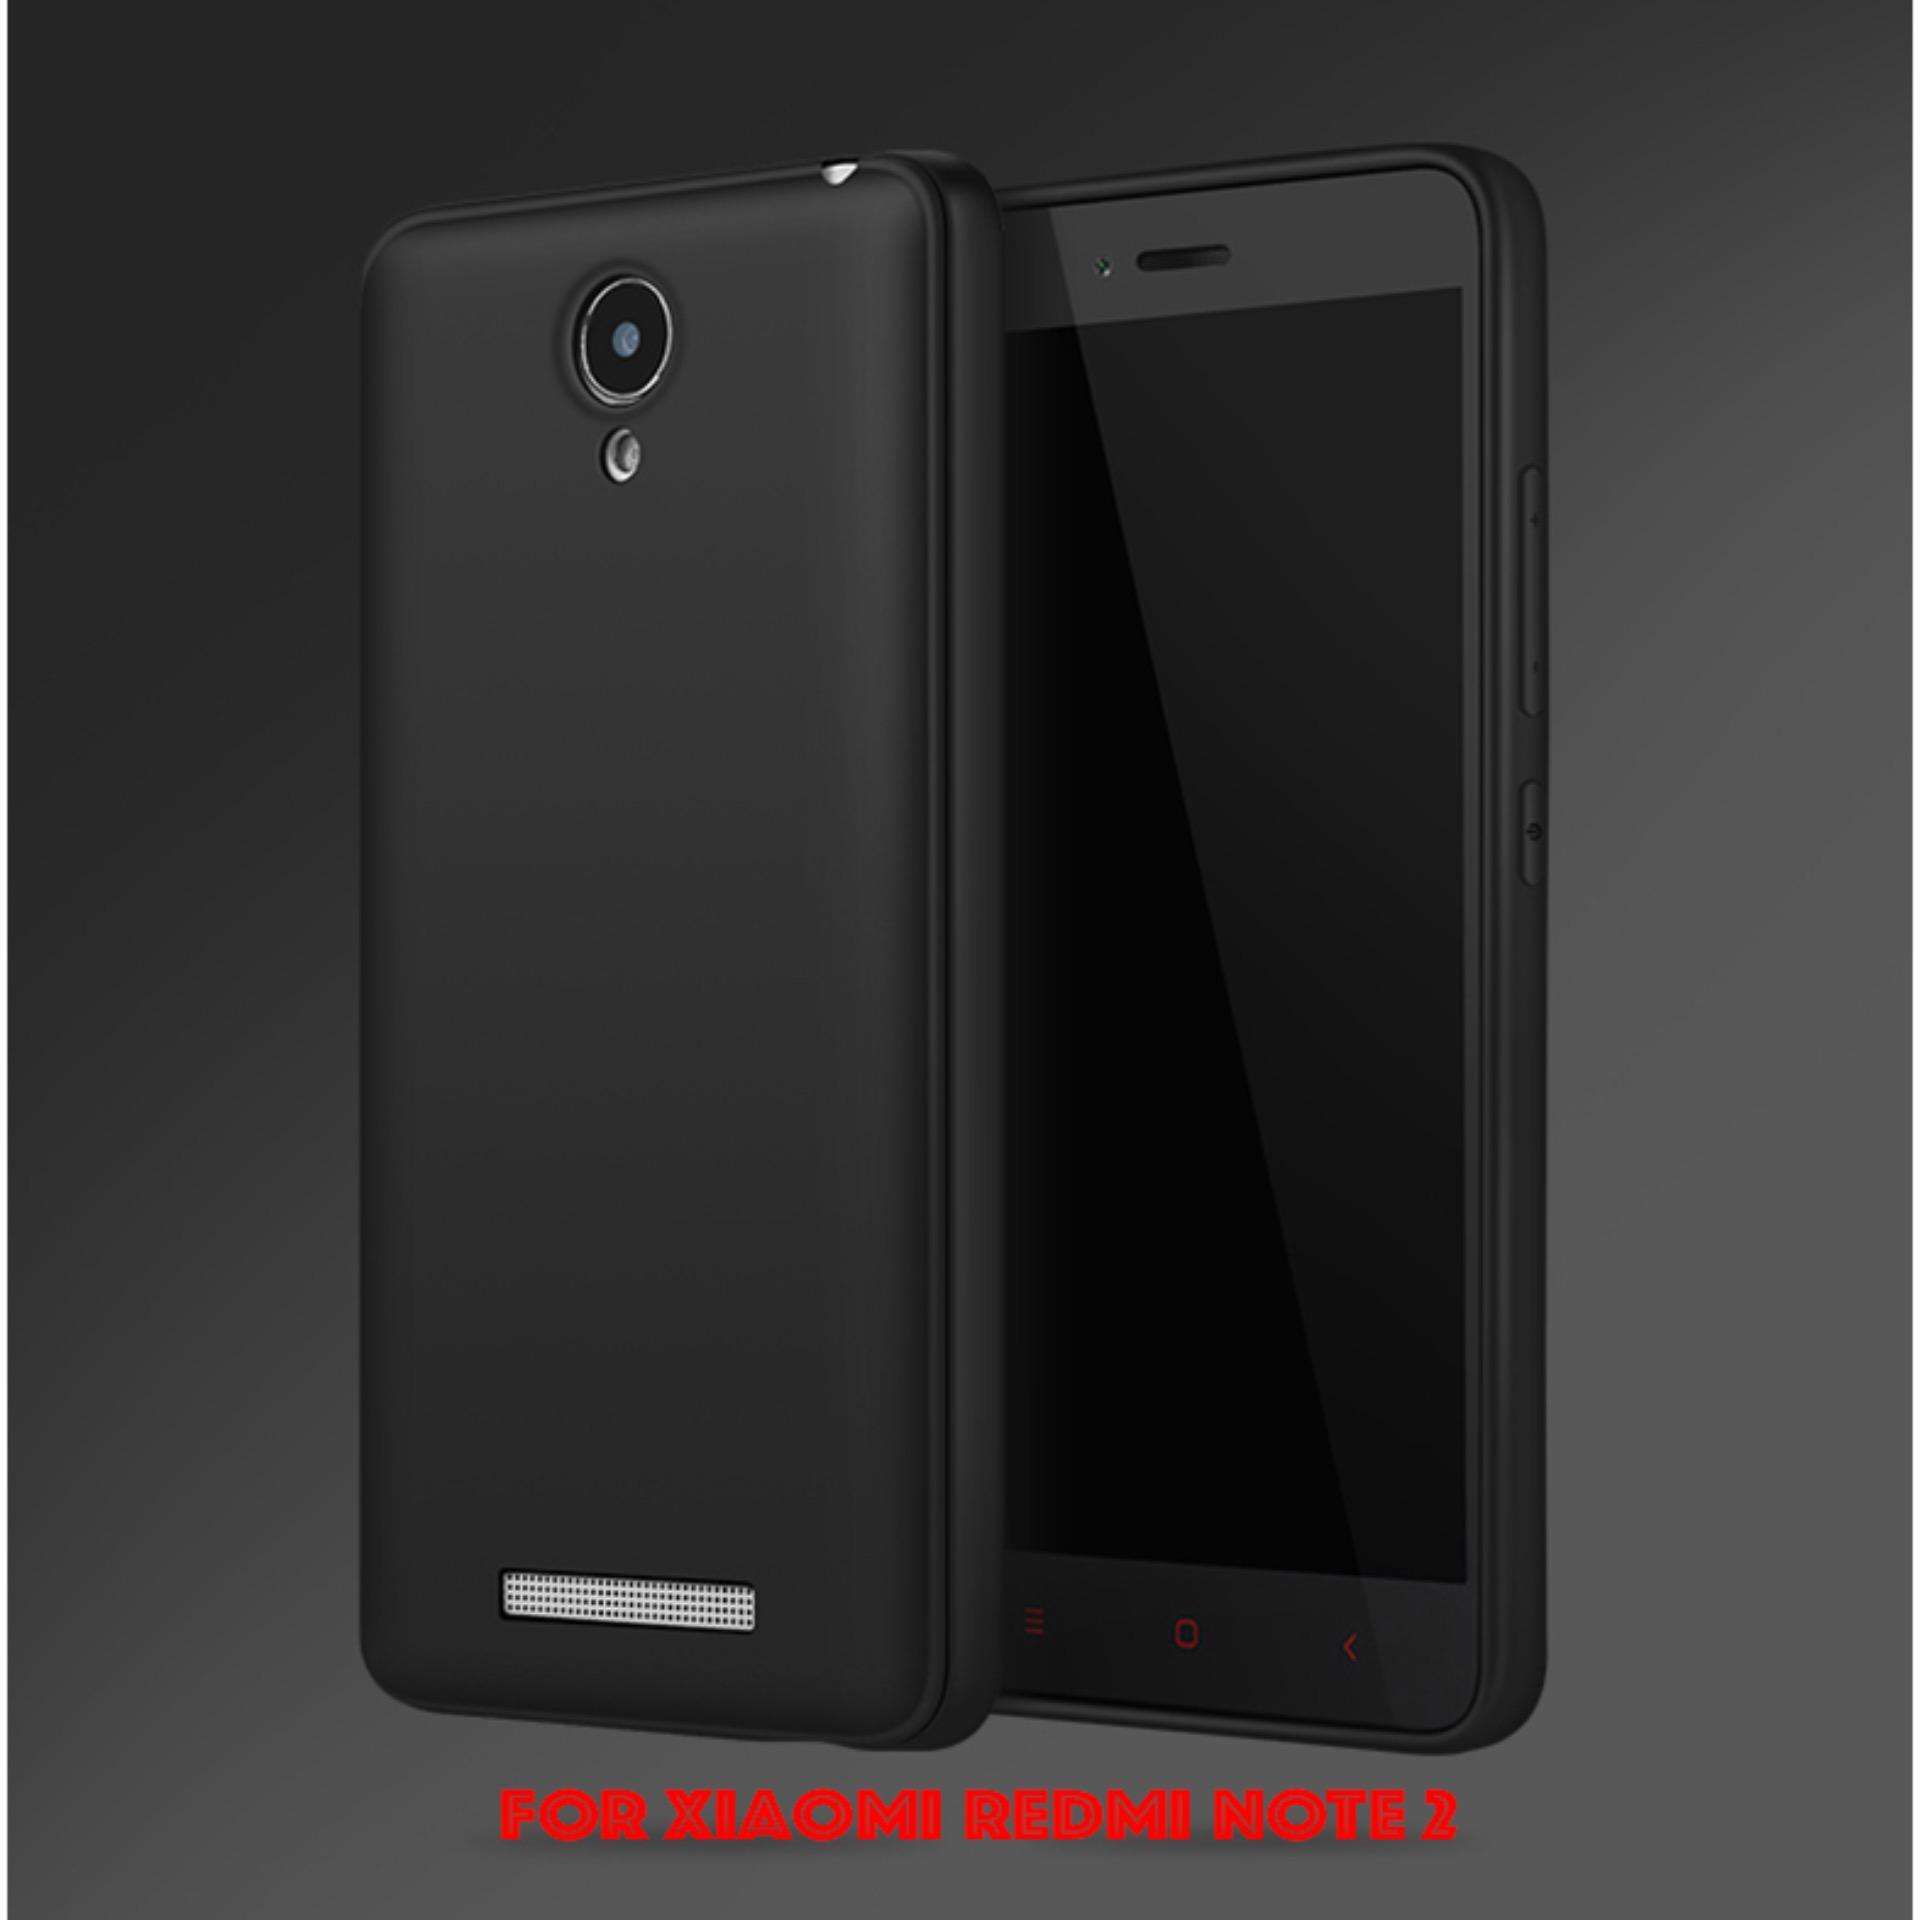 Case For Xiaomi Redmi Note 2 UltraSlim Premium Shockproof Hybrid Full Cover Series .